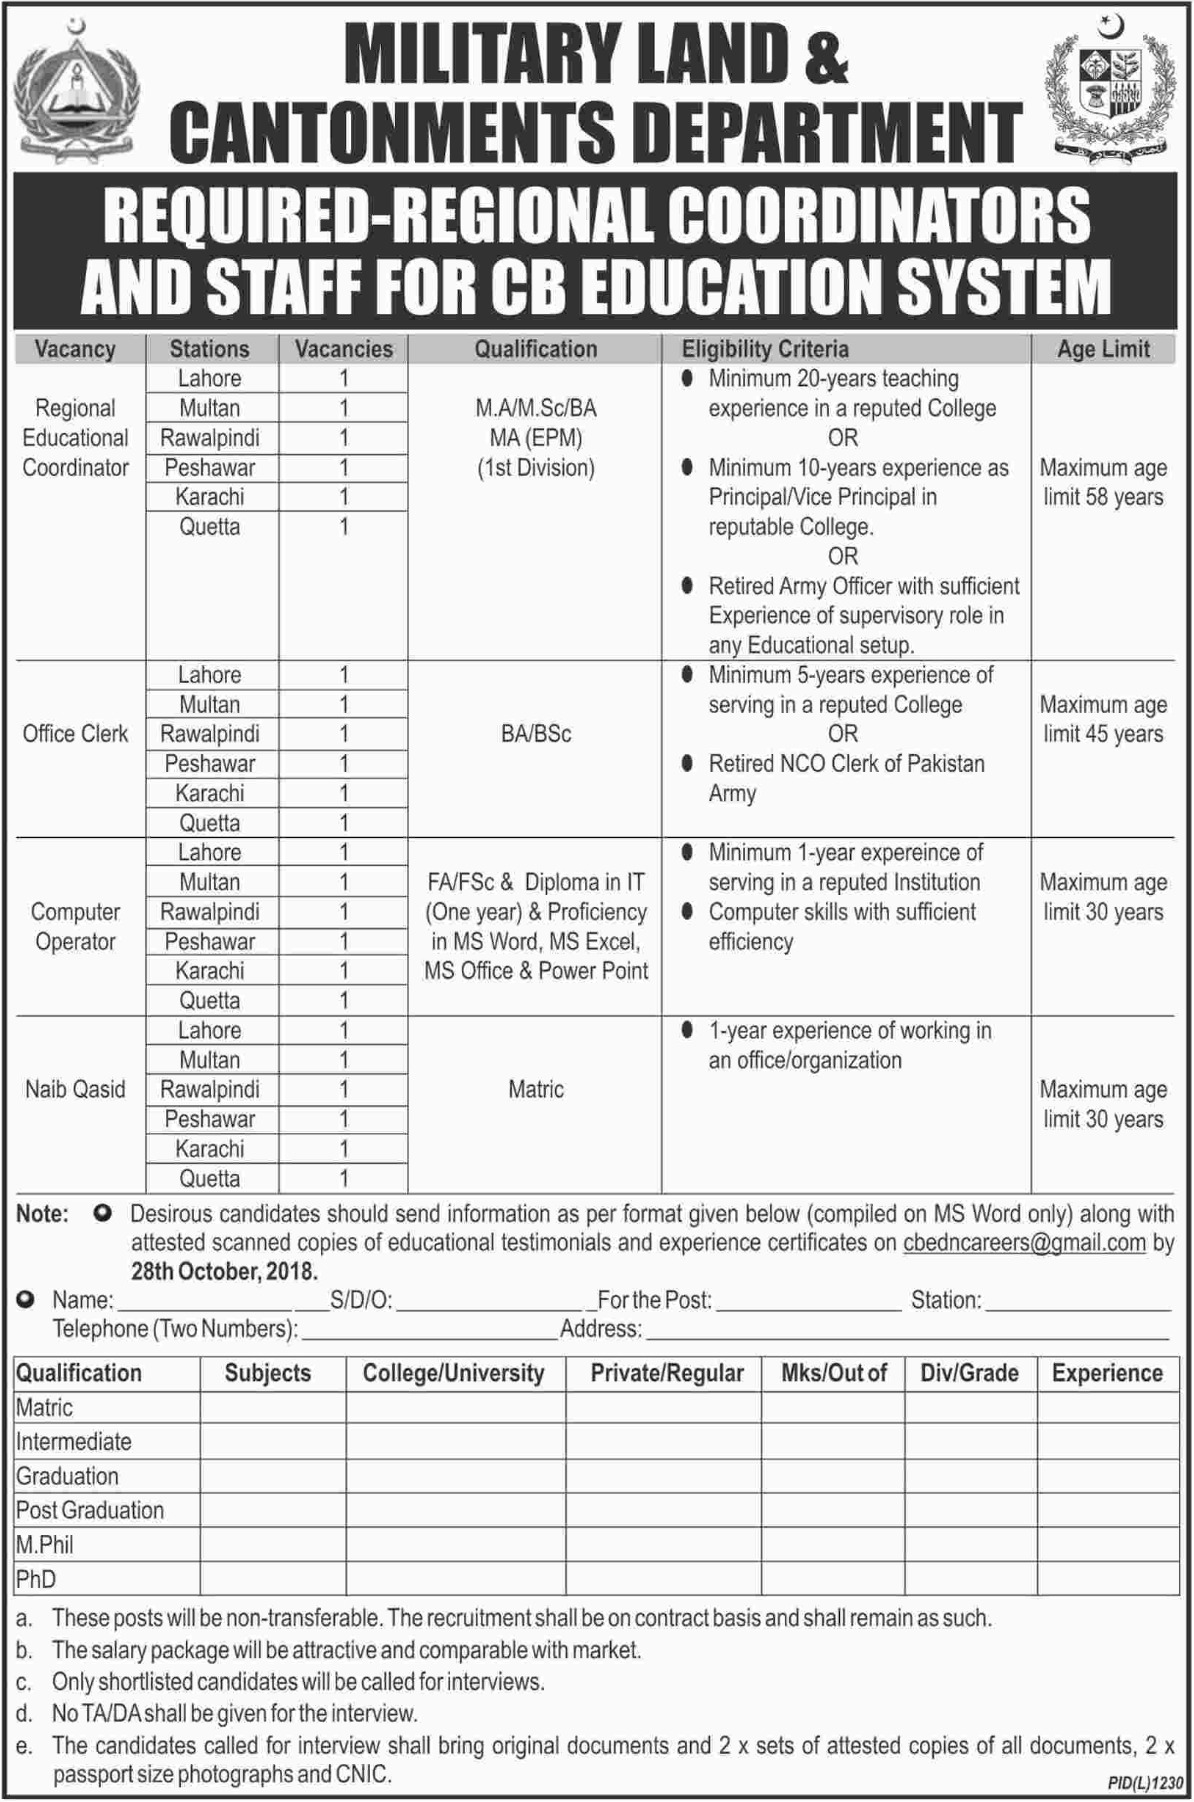 Military Land & Cantonments Department Jobs 23 October 2018